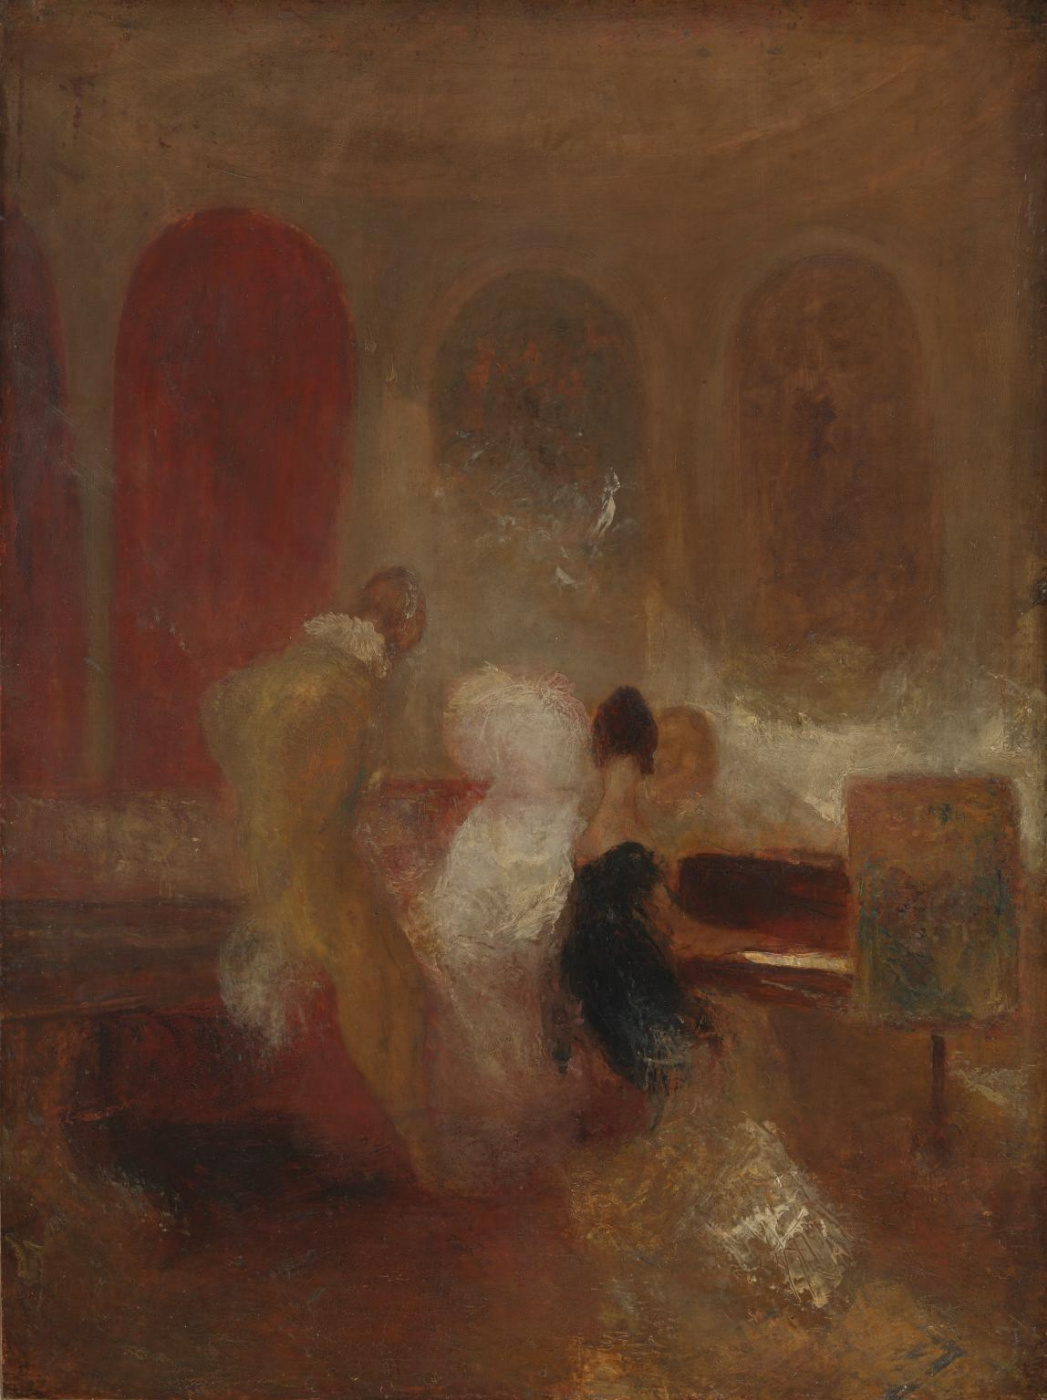 Joseph Mallord William Turner. Musical evening in the castle East Cowes